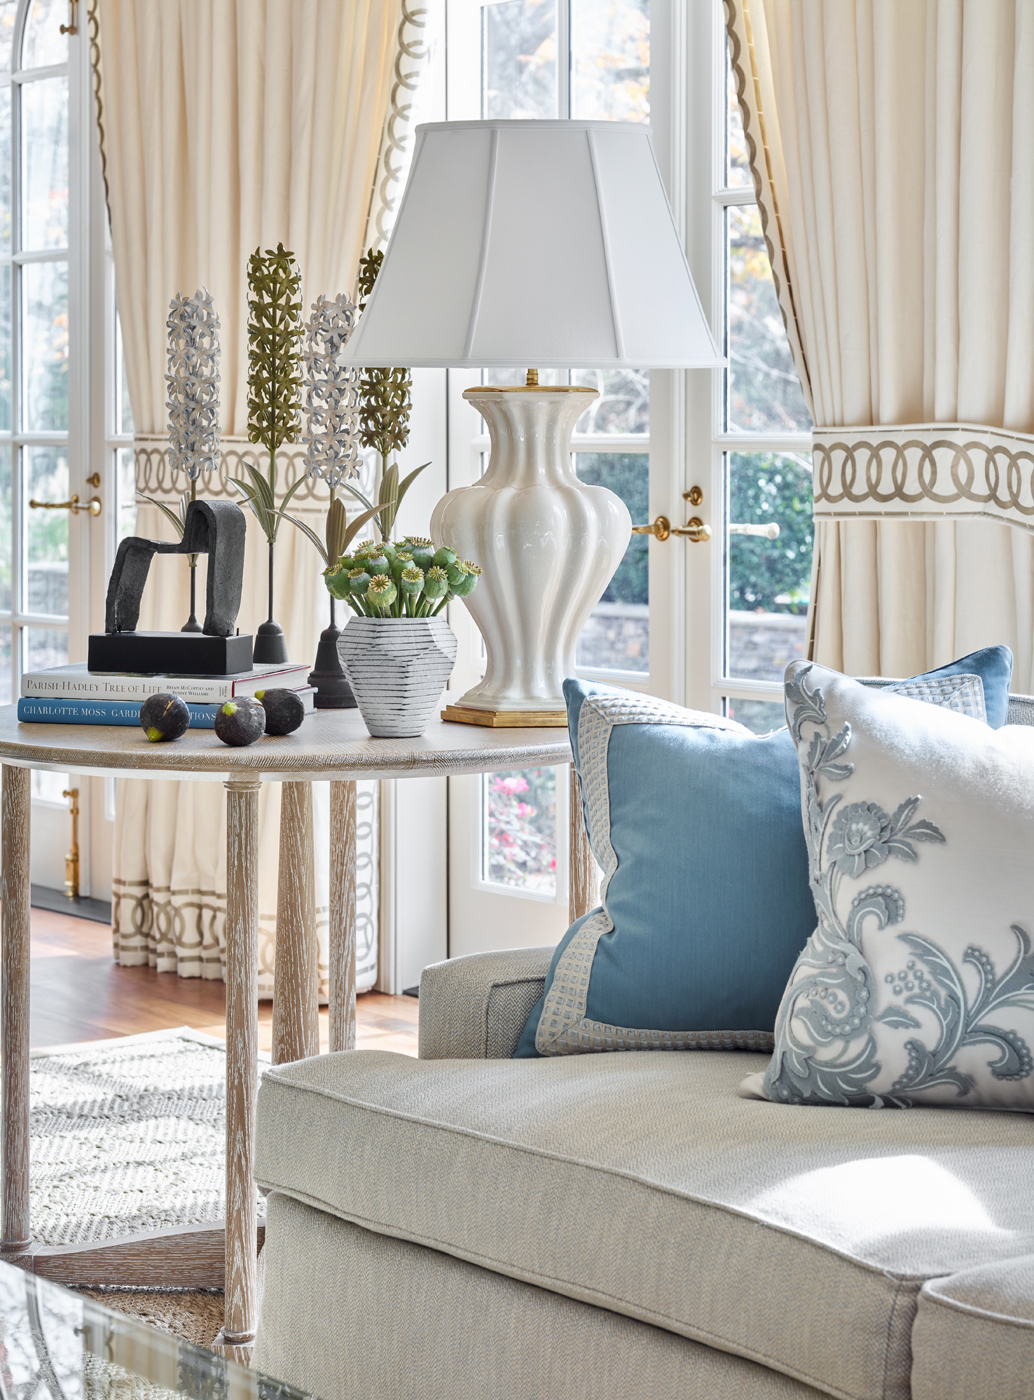 Family room vignette with cerused wood end table & white ceramic lamp; linen window treatments | Savage Interior Design